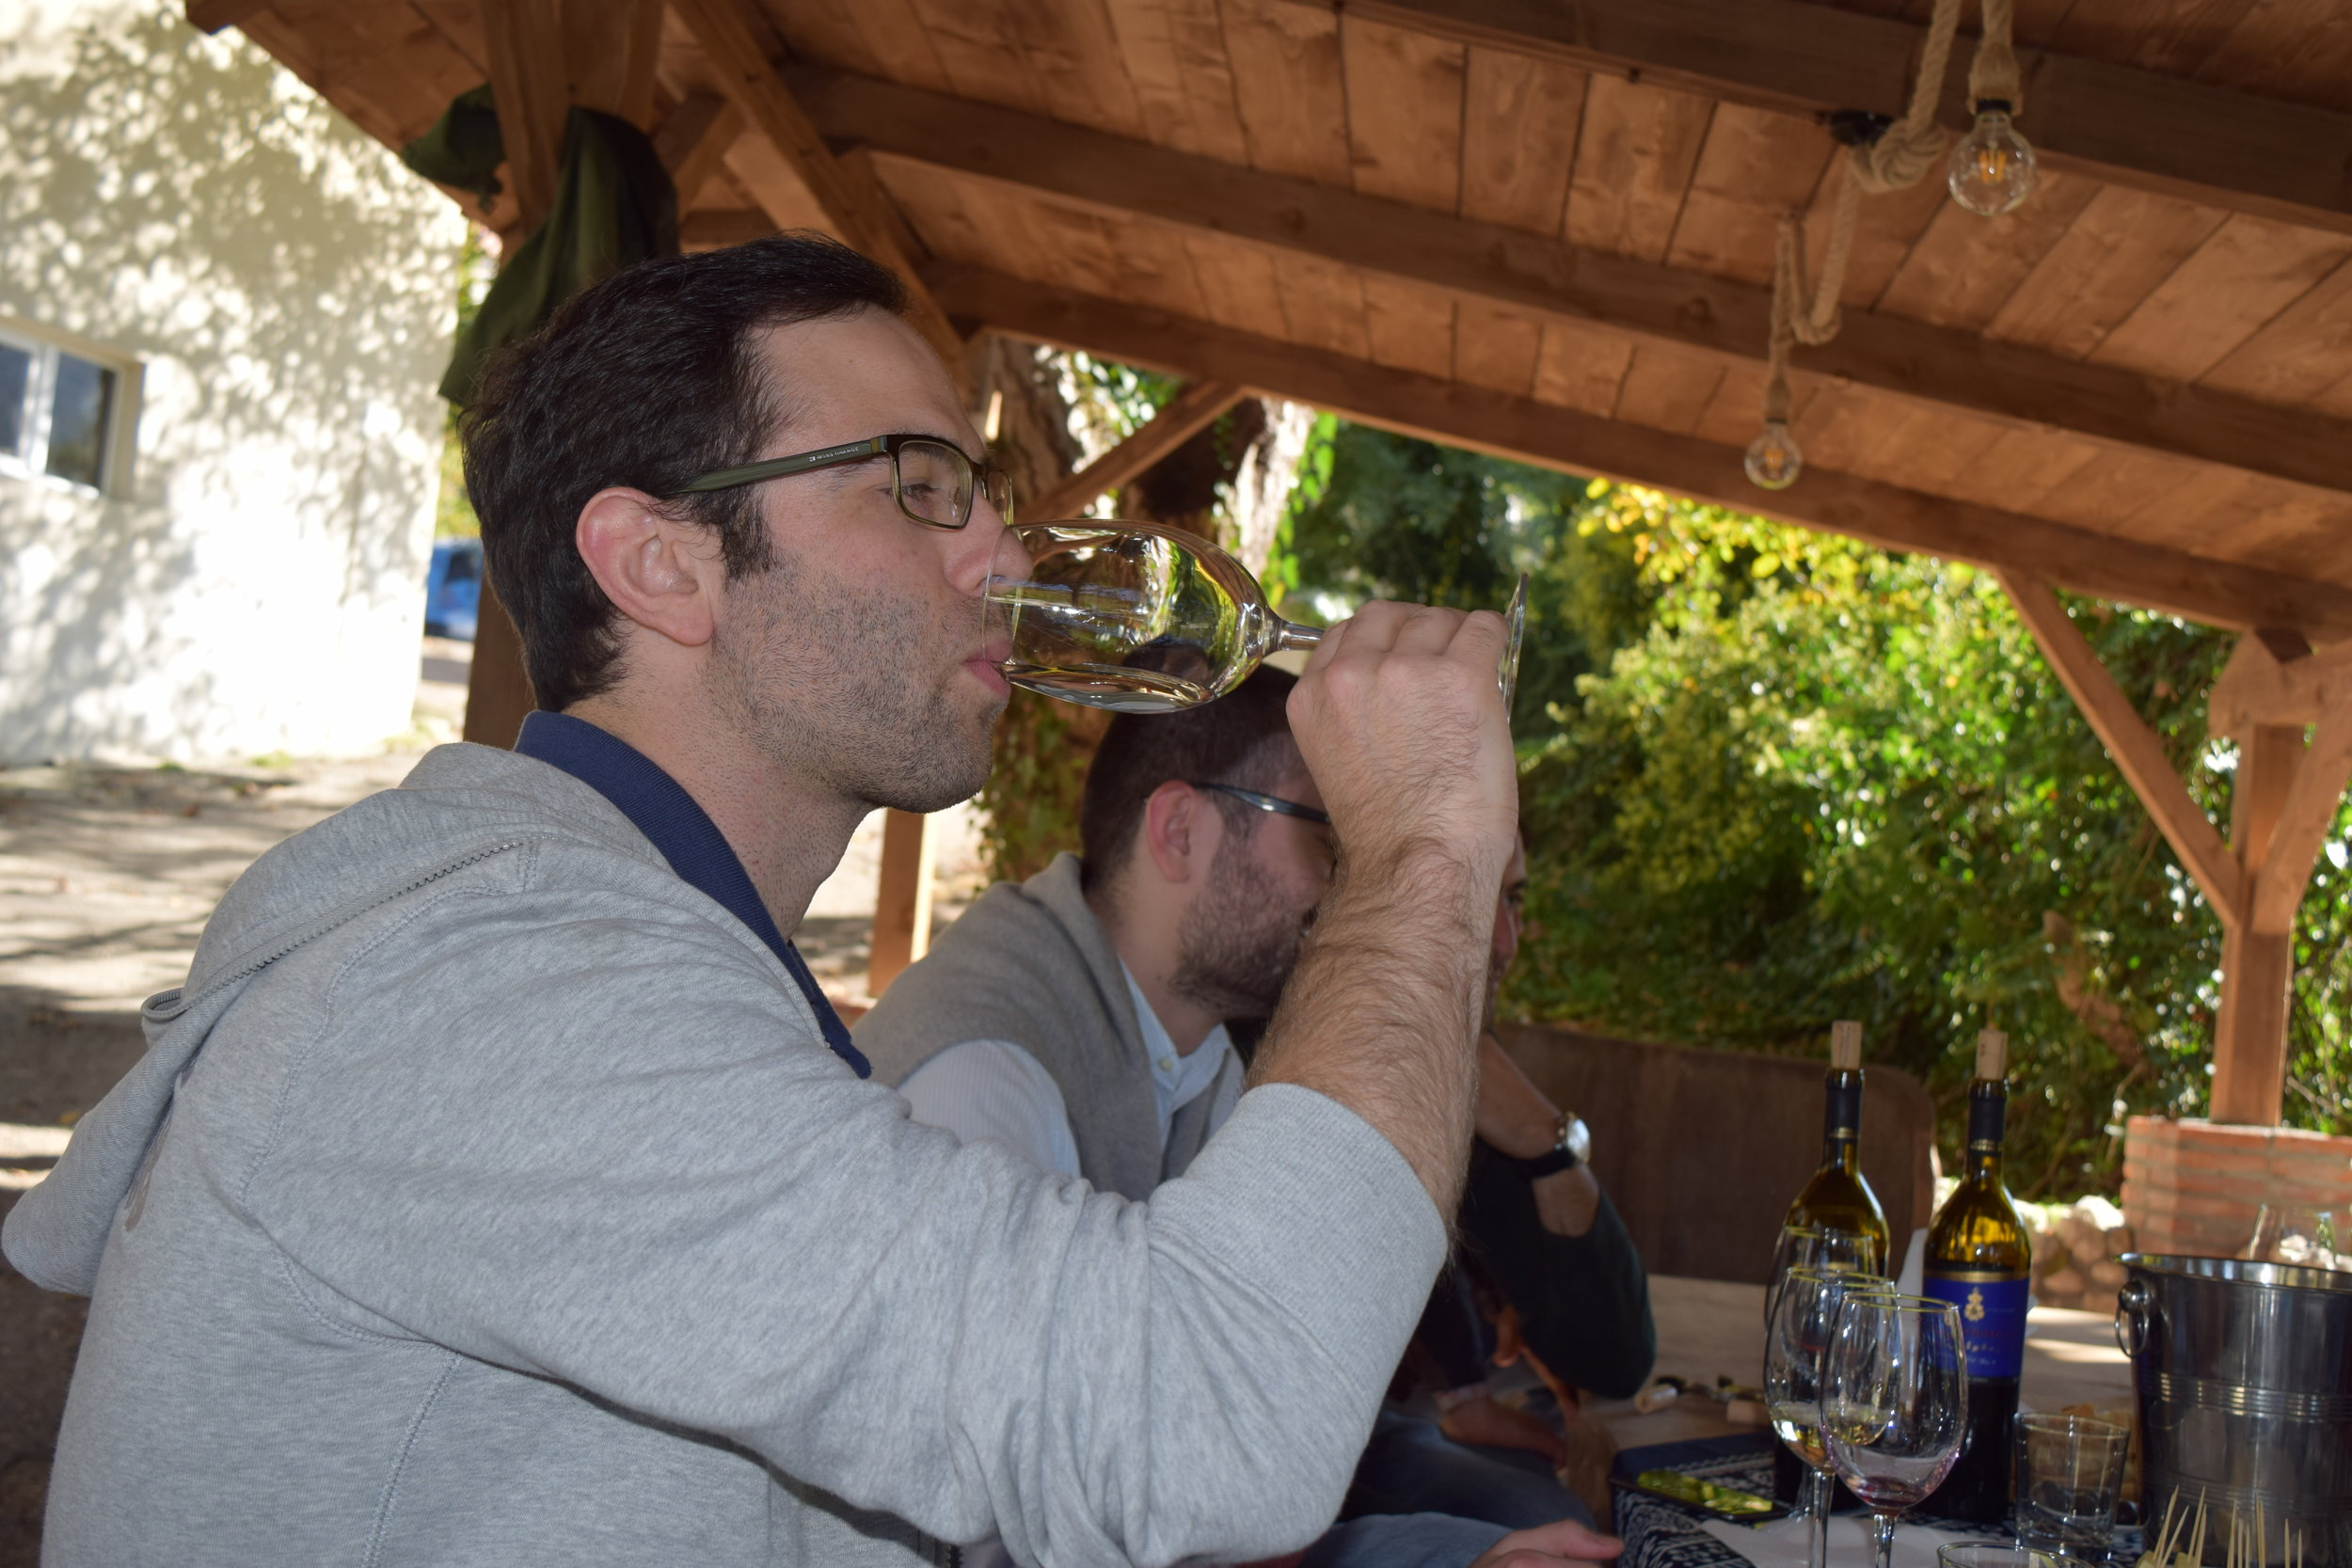 Trying Tvishi, which is a delicious semi-sweet white wine made at Royal Khvanchkara in Georgia.